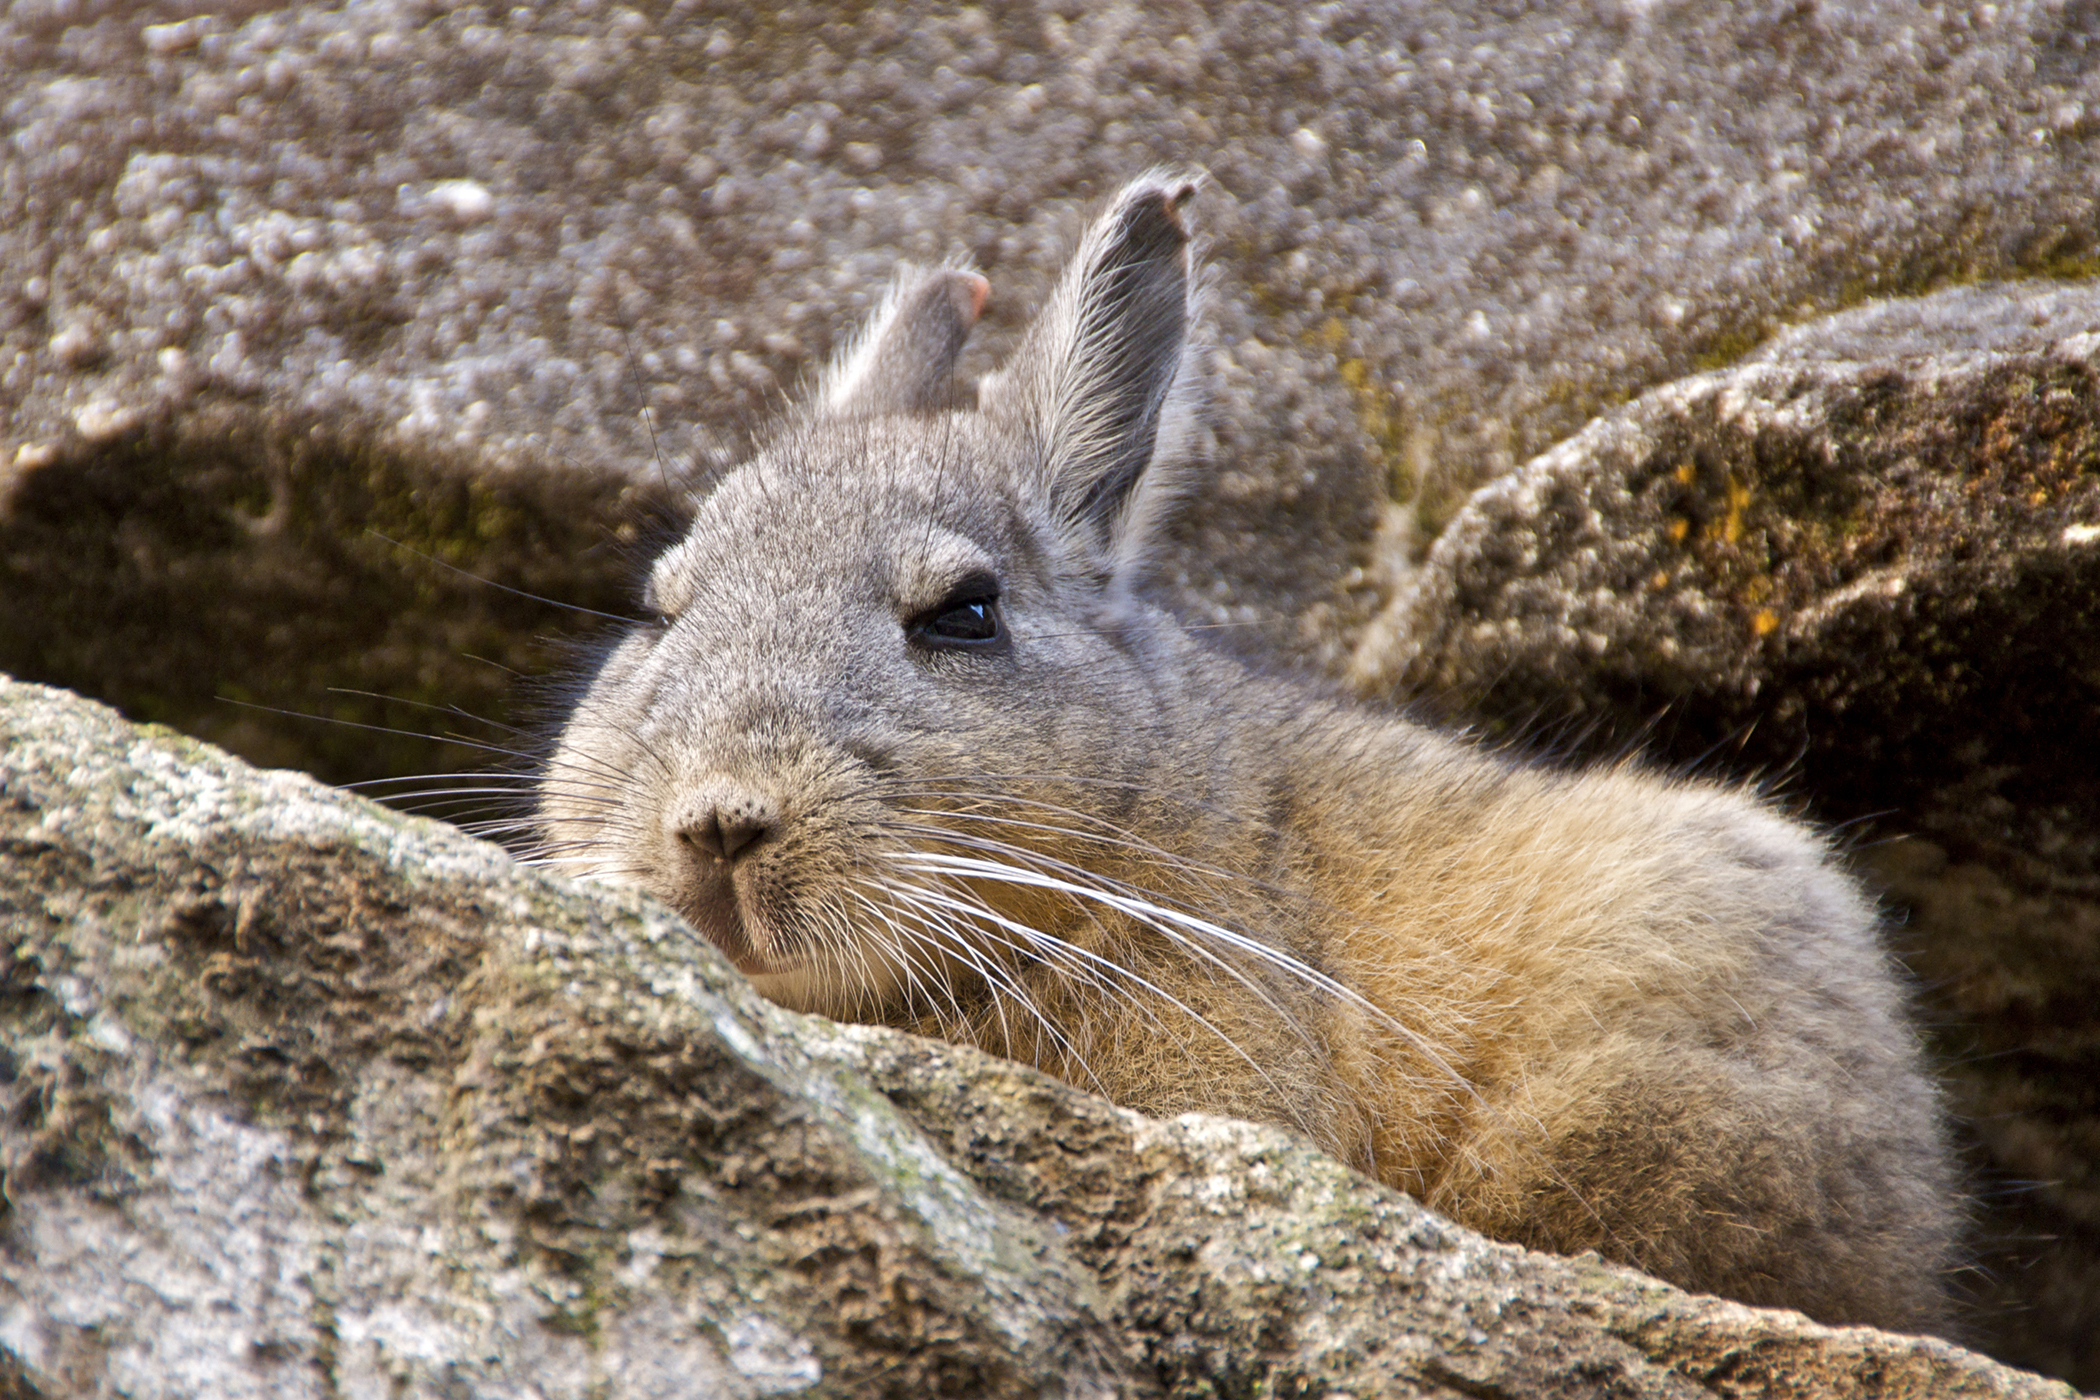 Herpes Virus Infection in Chinchillas